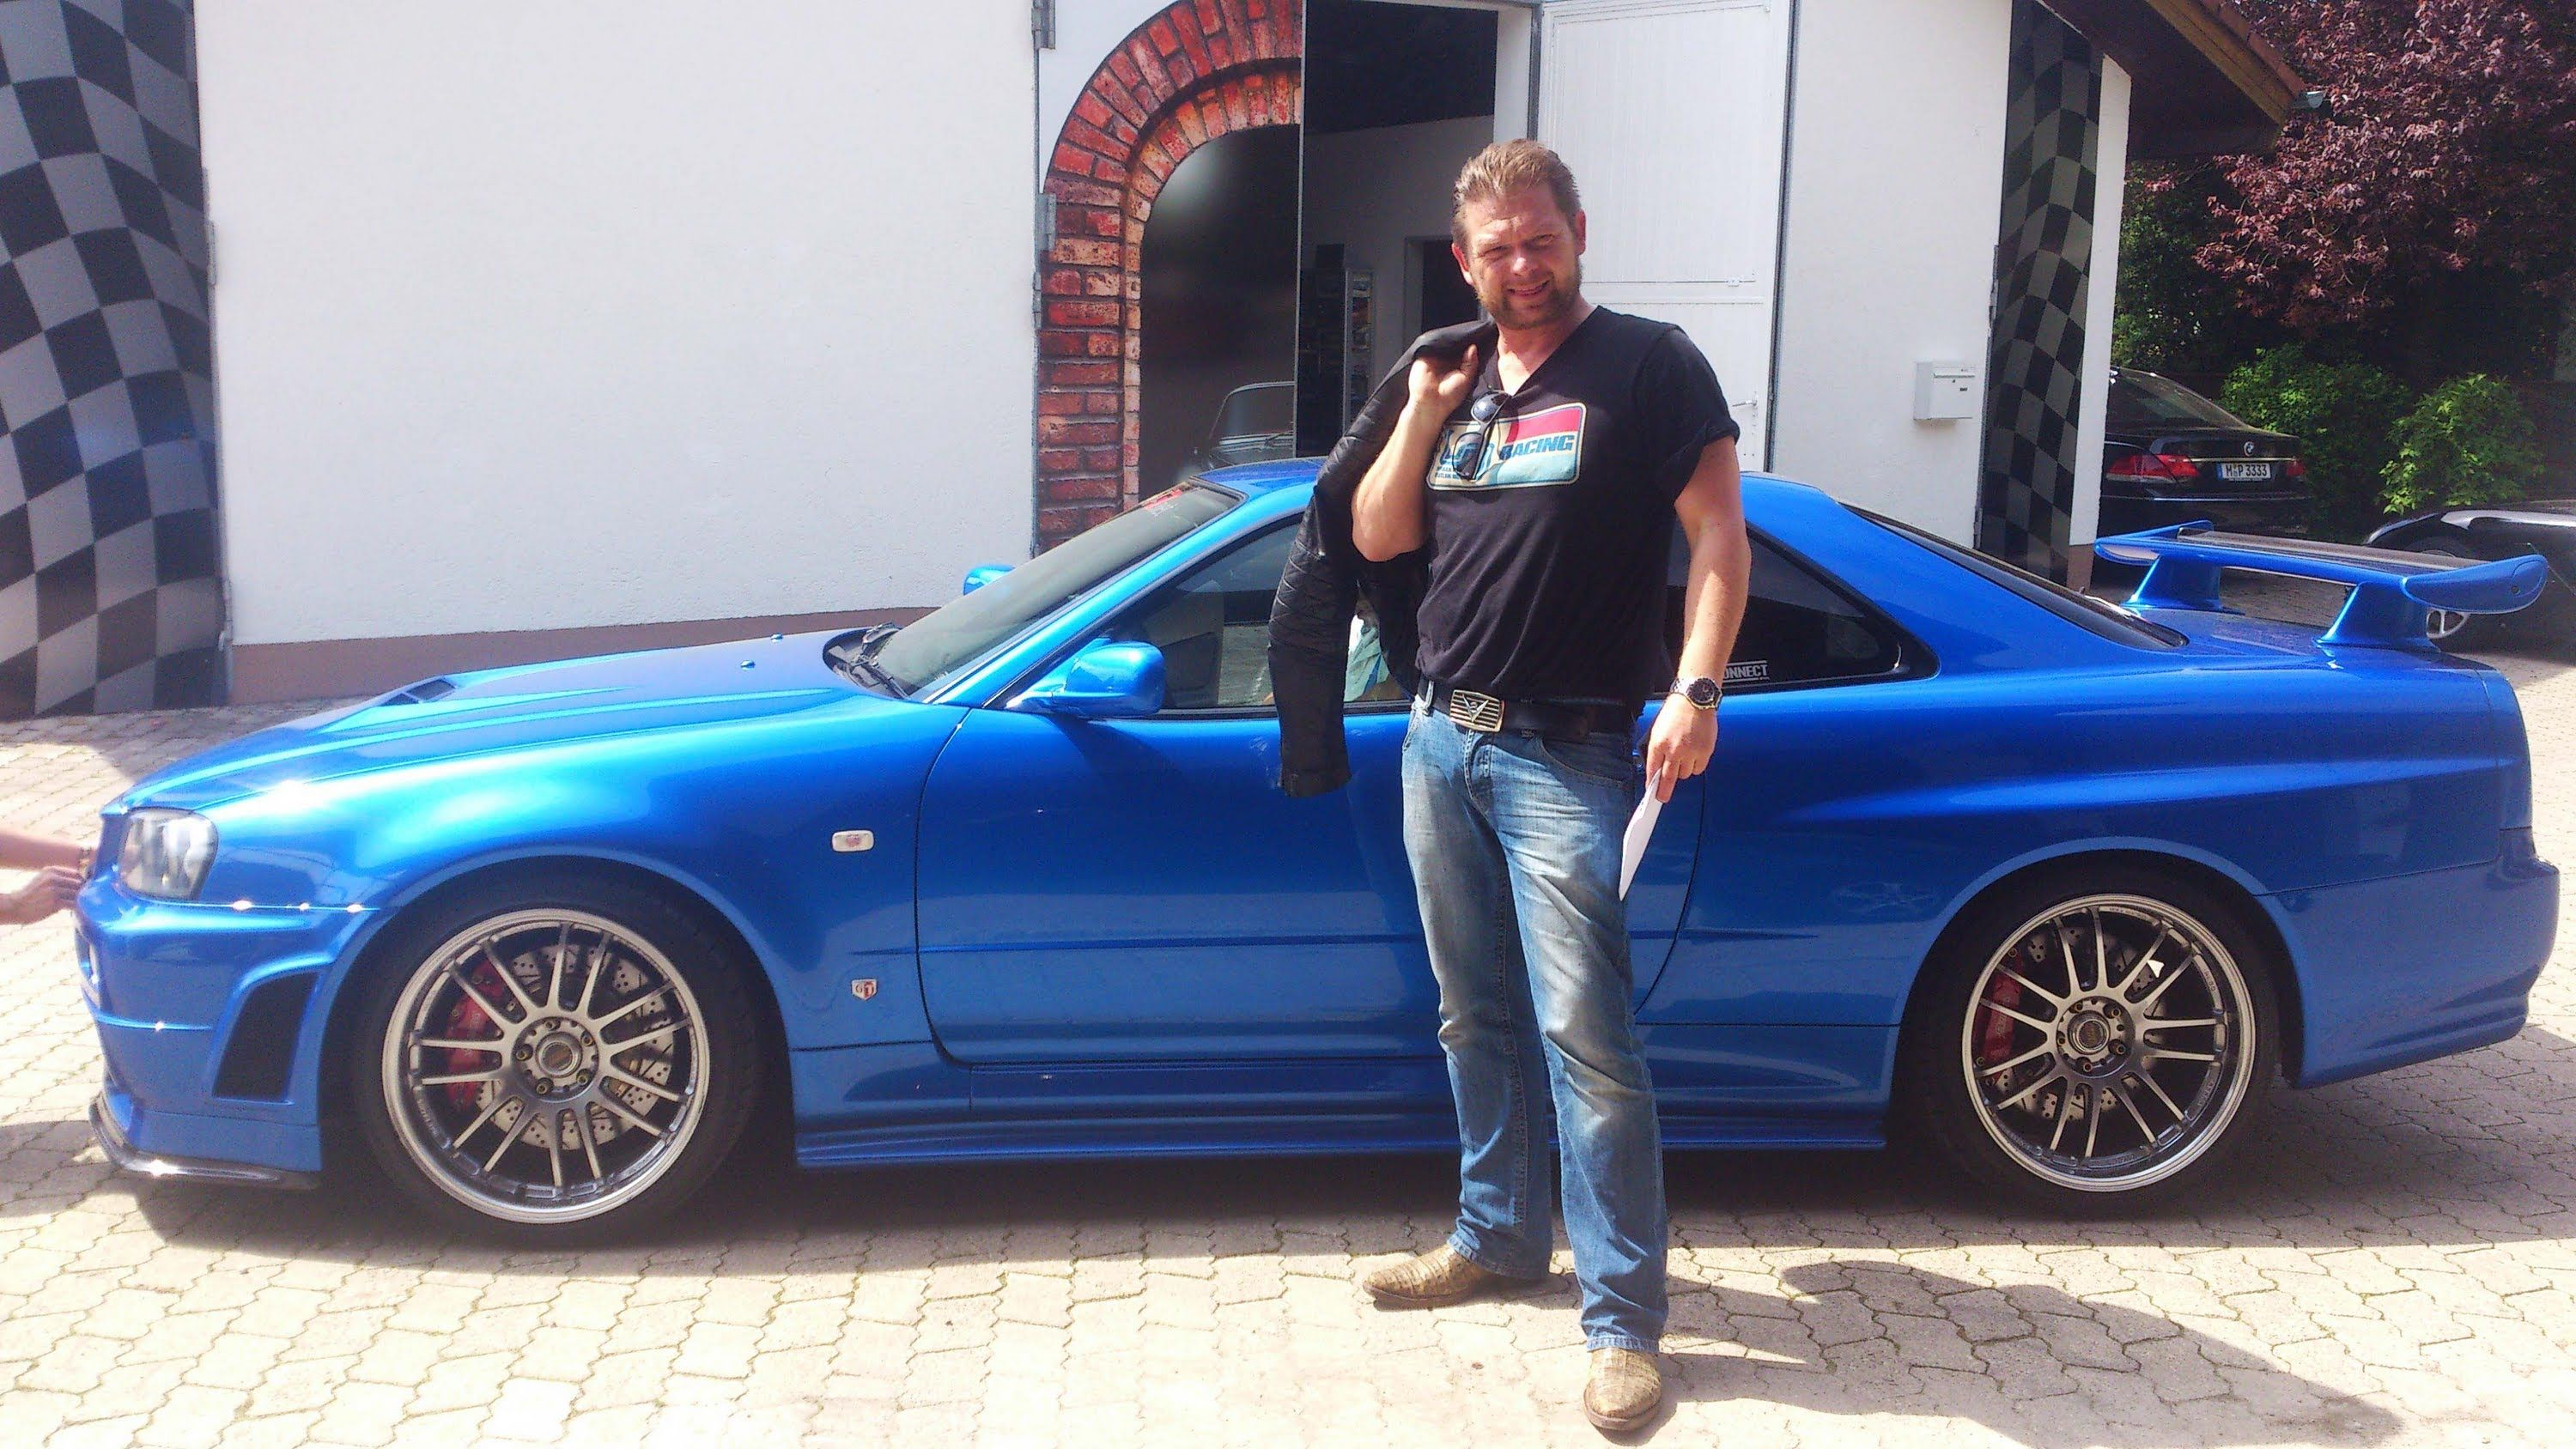 Paul Walkers Nissan Skyline GT-R R34 - GRIP - Folge 235 - RTL2